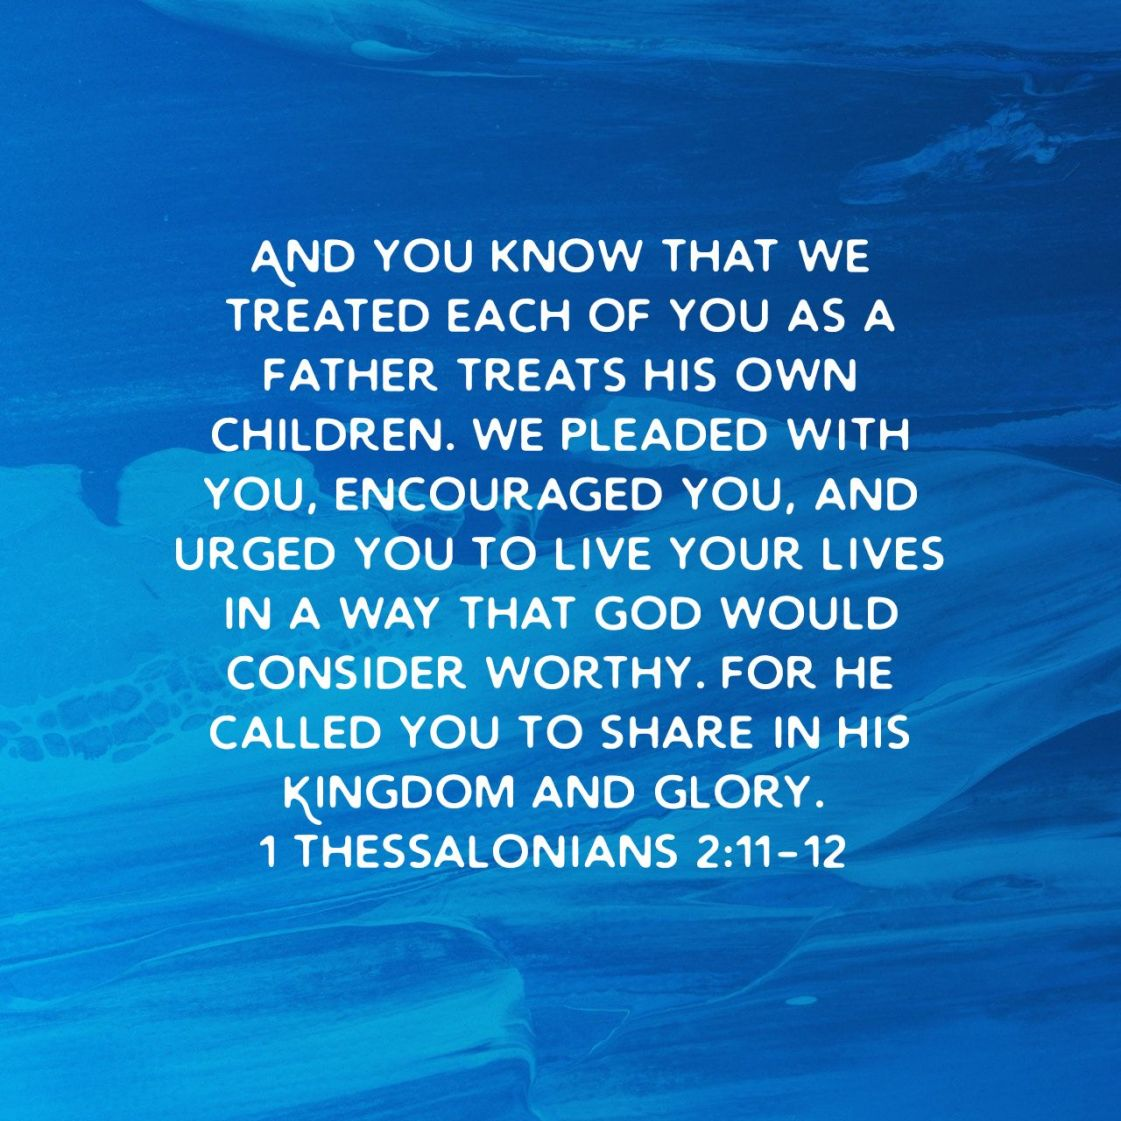 And you know that we treated each of you as a father treats his own children. We pleaded with you, encouraged you, and urged you to live your lives in a way that God would consider worthy. For he called you to share in his Kingdom and glory. - 1 Thessalonians 2:11-12 NLT